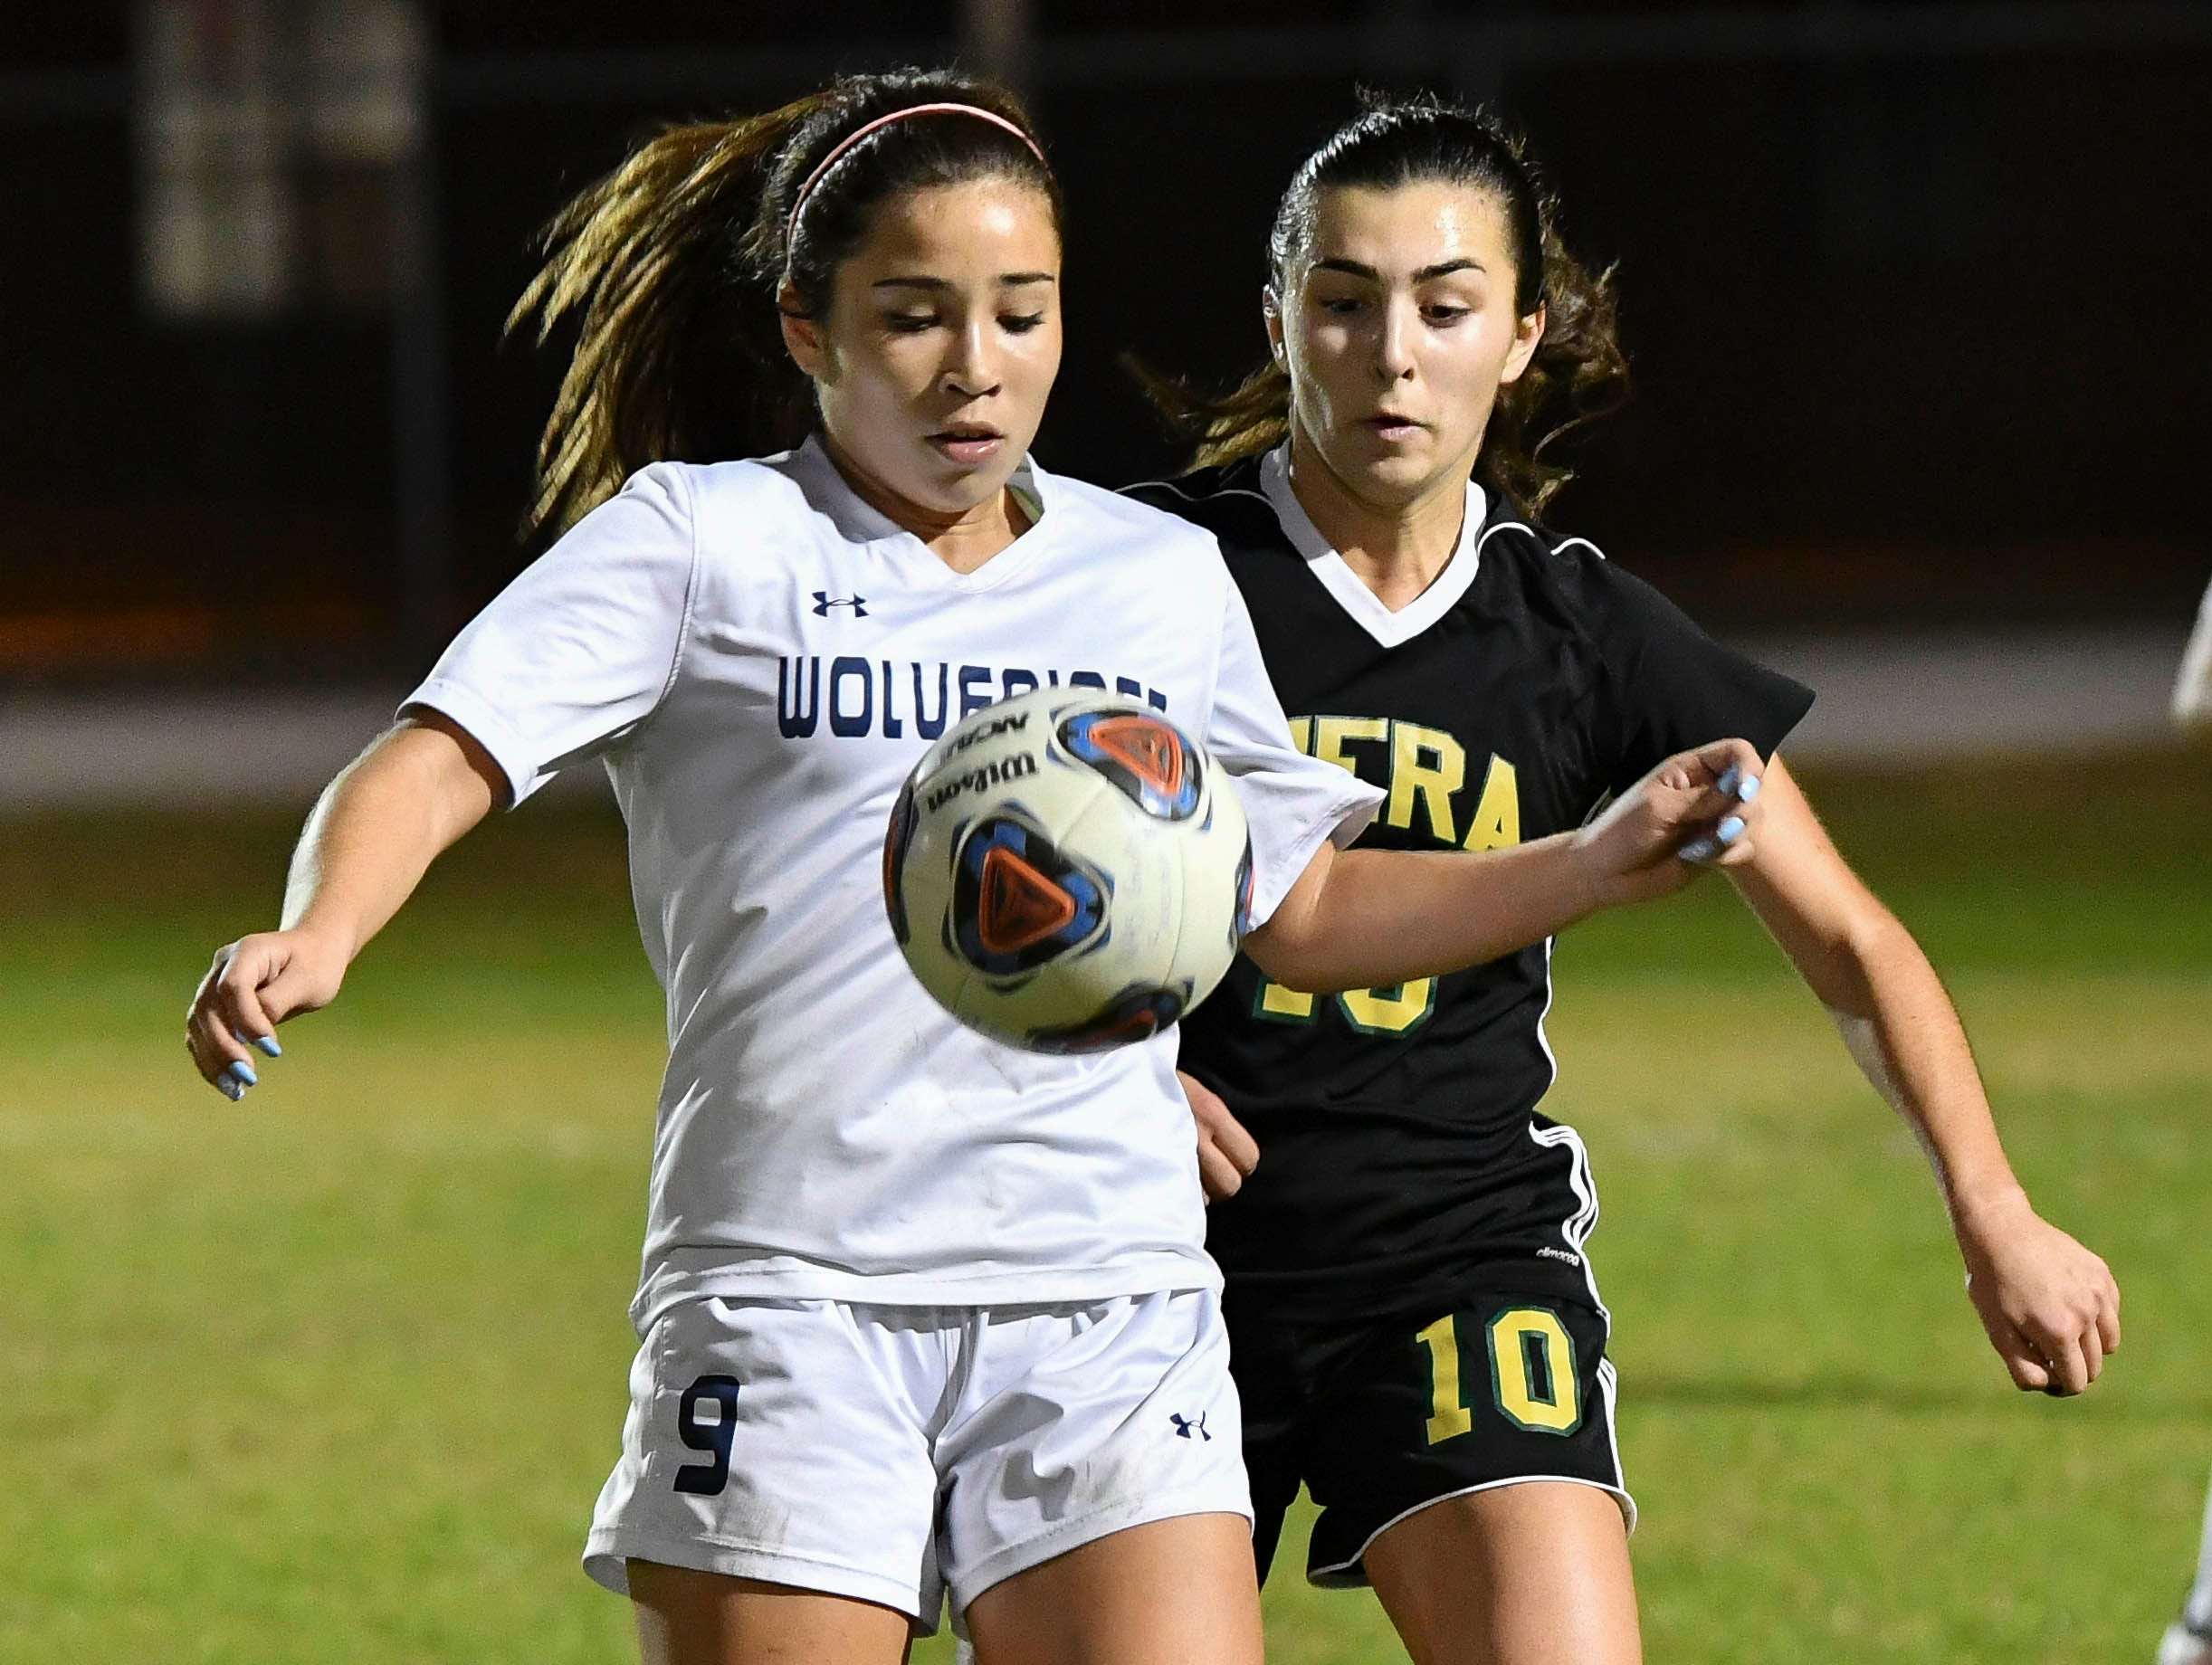 Victoria Gonzales of Windermere is shadowed by Viera's Carolina Santos during Tuesday's Regional Quarterfinal game at Viera High School